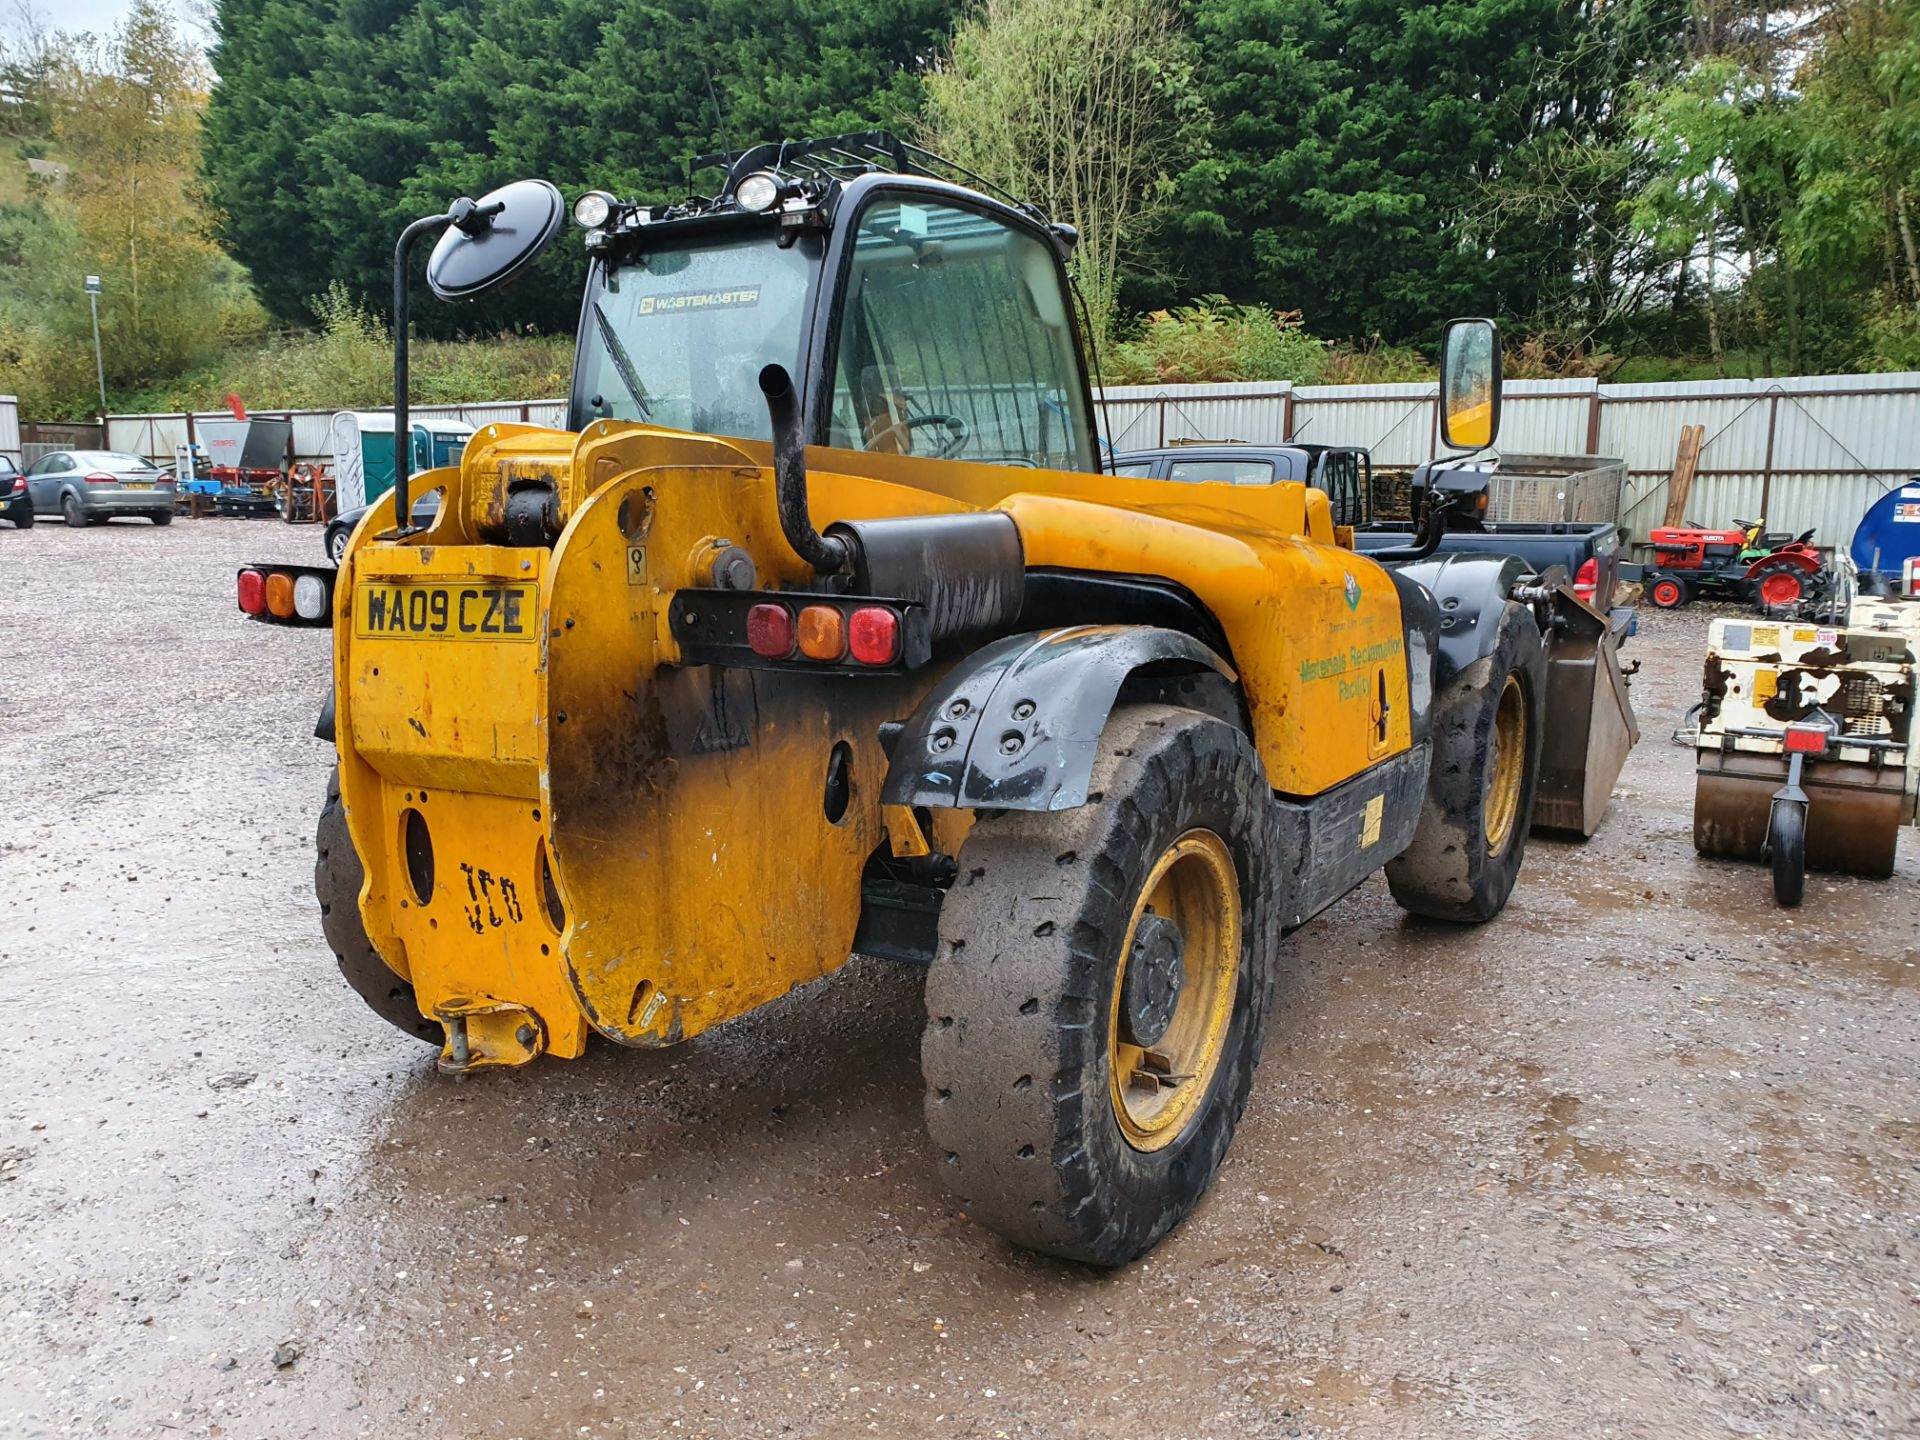 Lot 9991 - 2009 JCB 541-70 WASTEMASTER